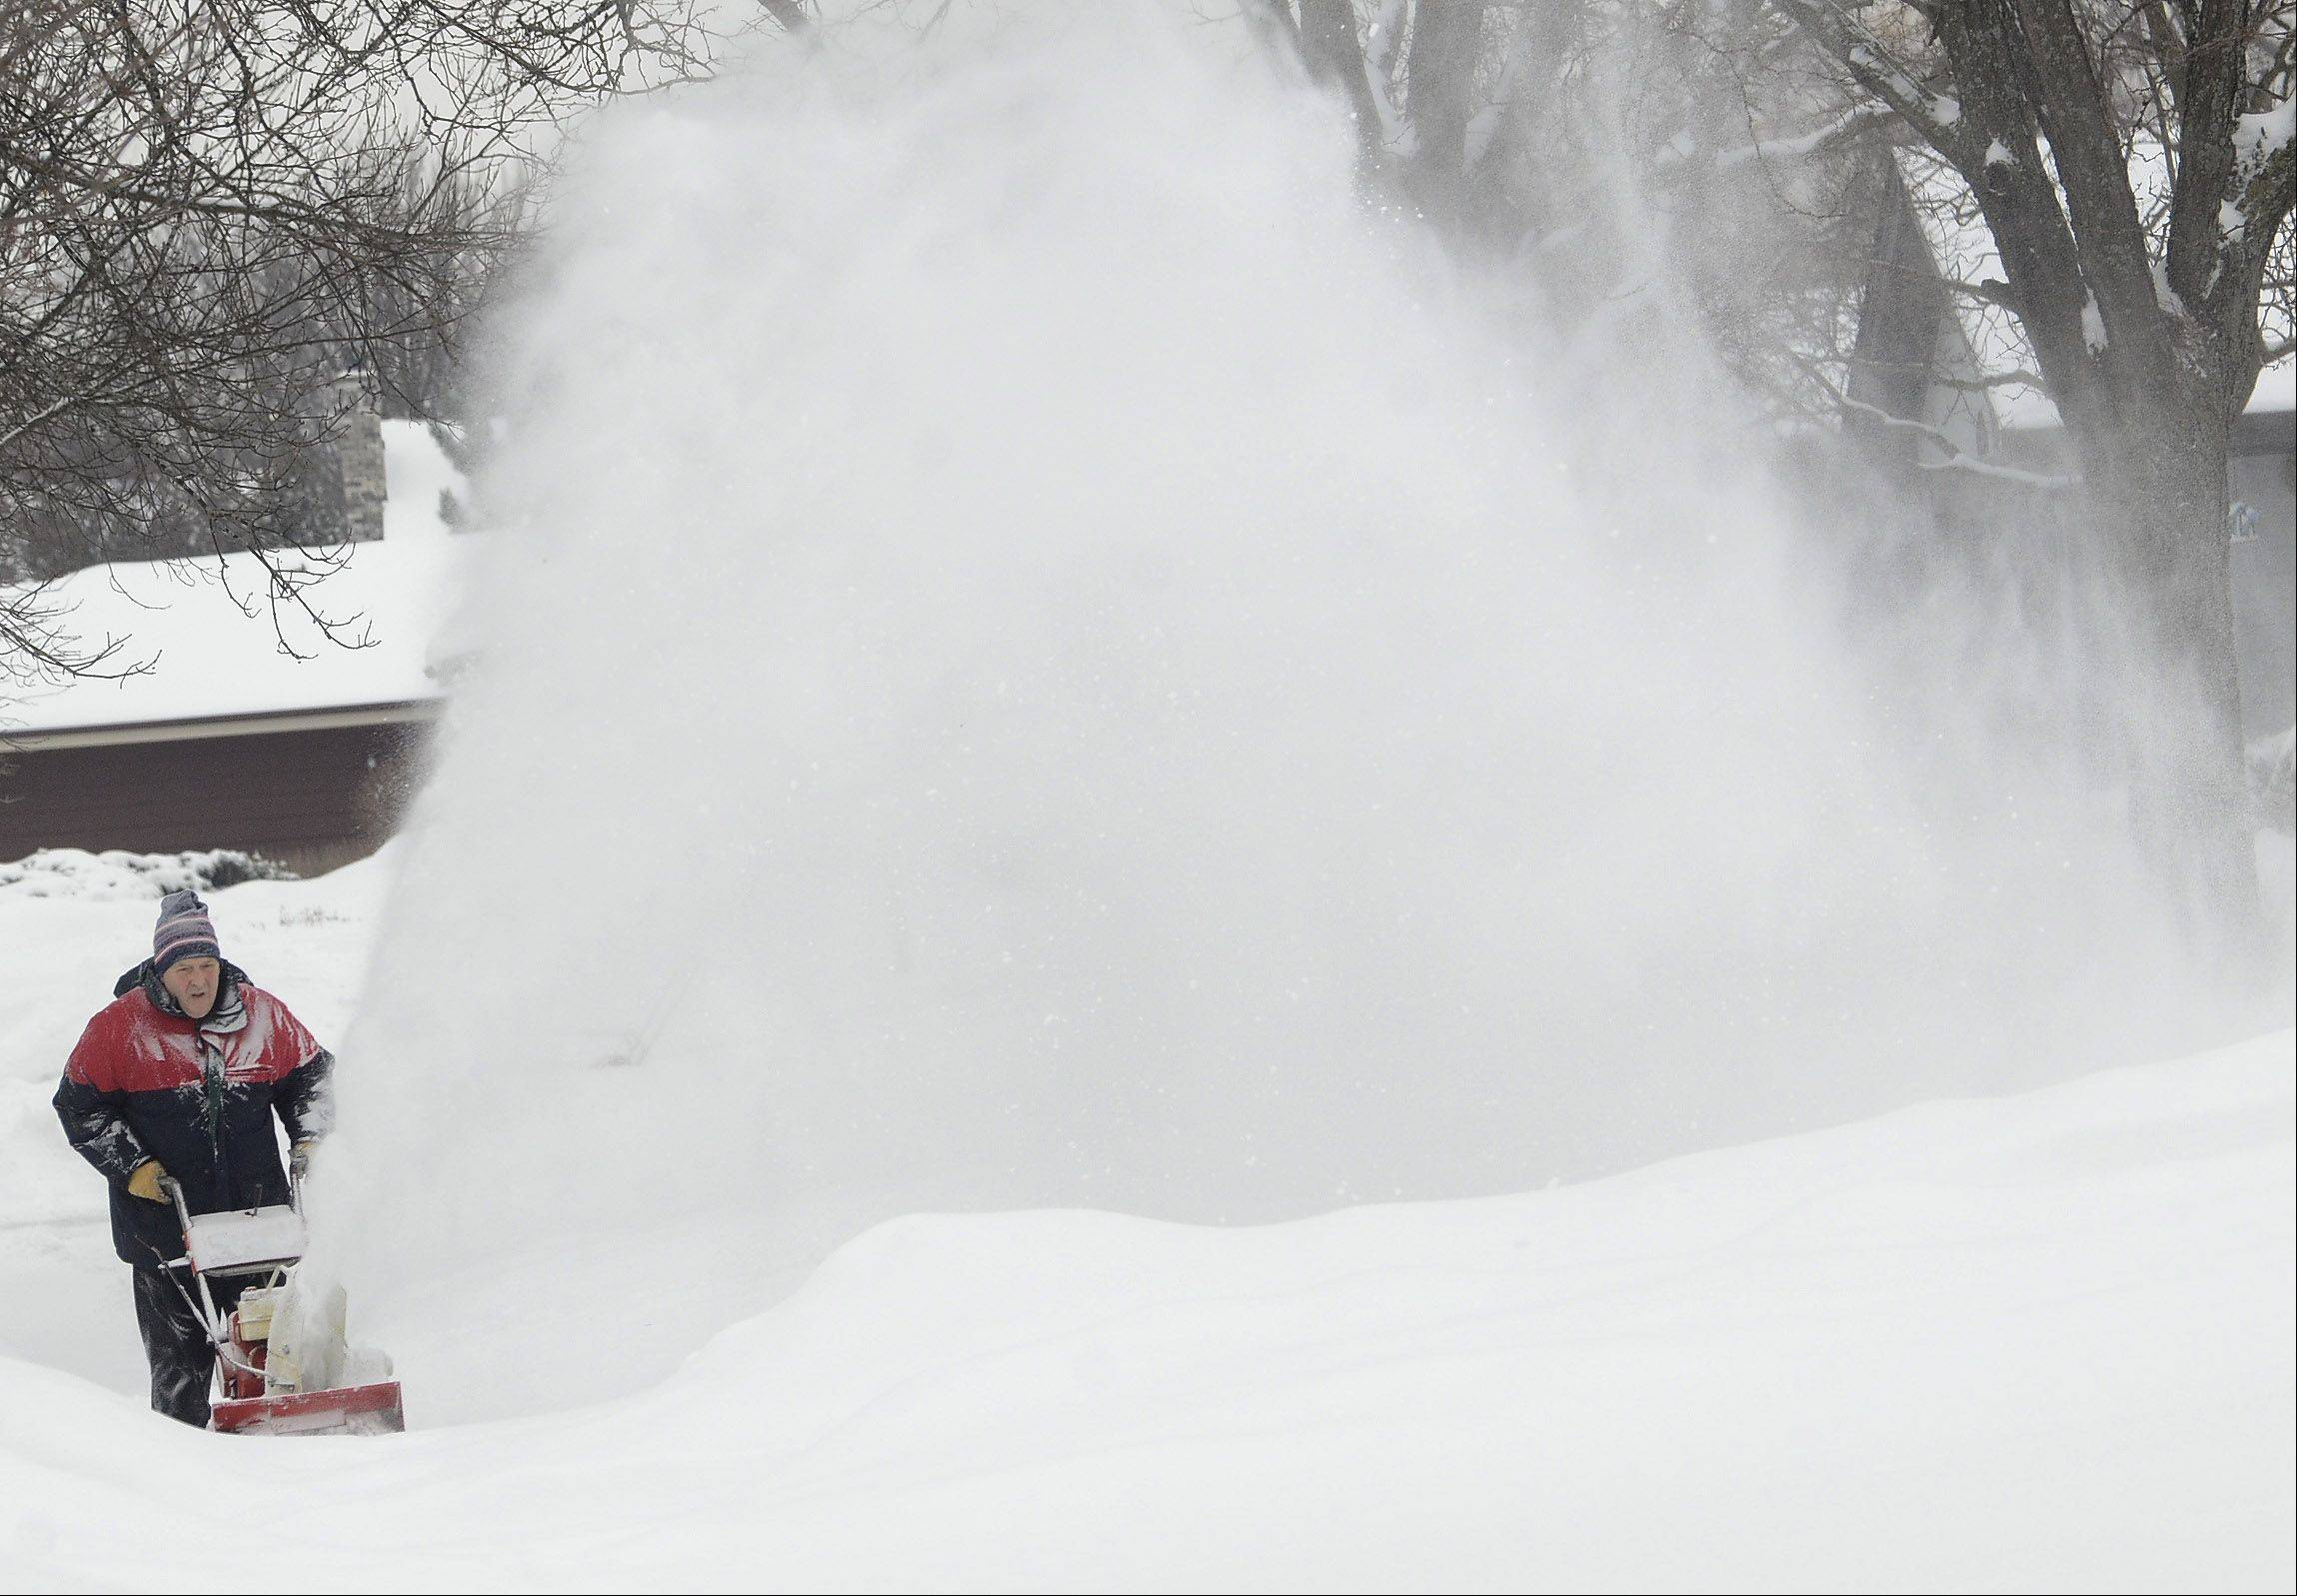 Bernie Wagner of Knollwood Drive in Schaumburg shoots a plume of snow from his snowblower as he digs out from Saturday's snowfall.